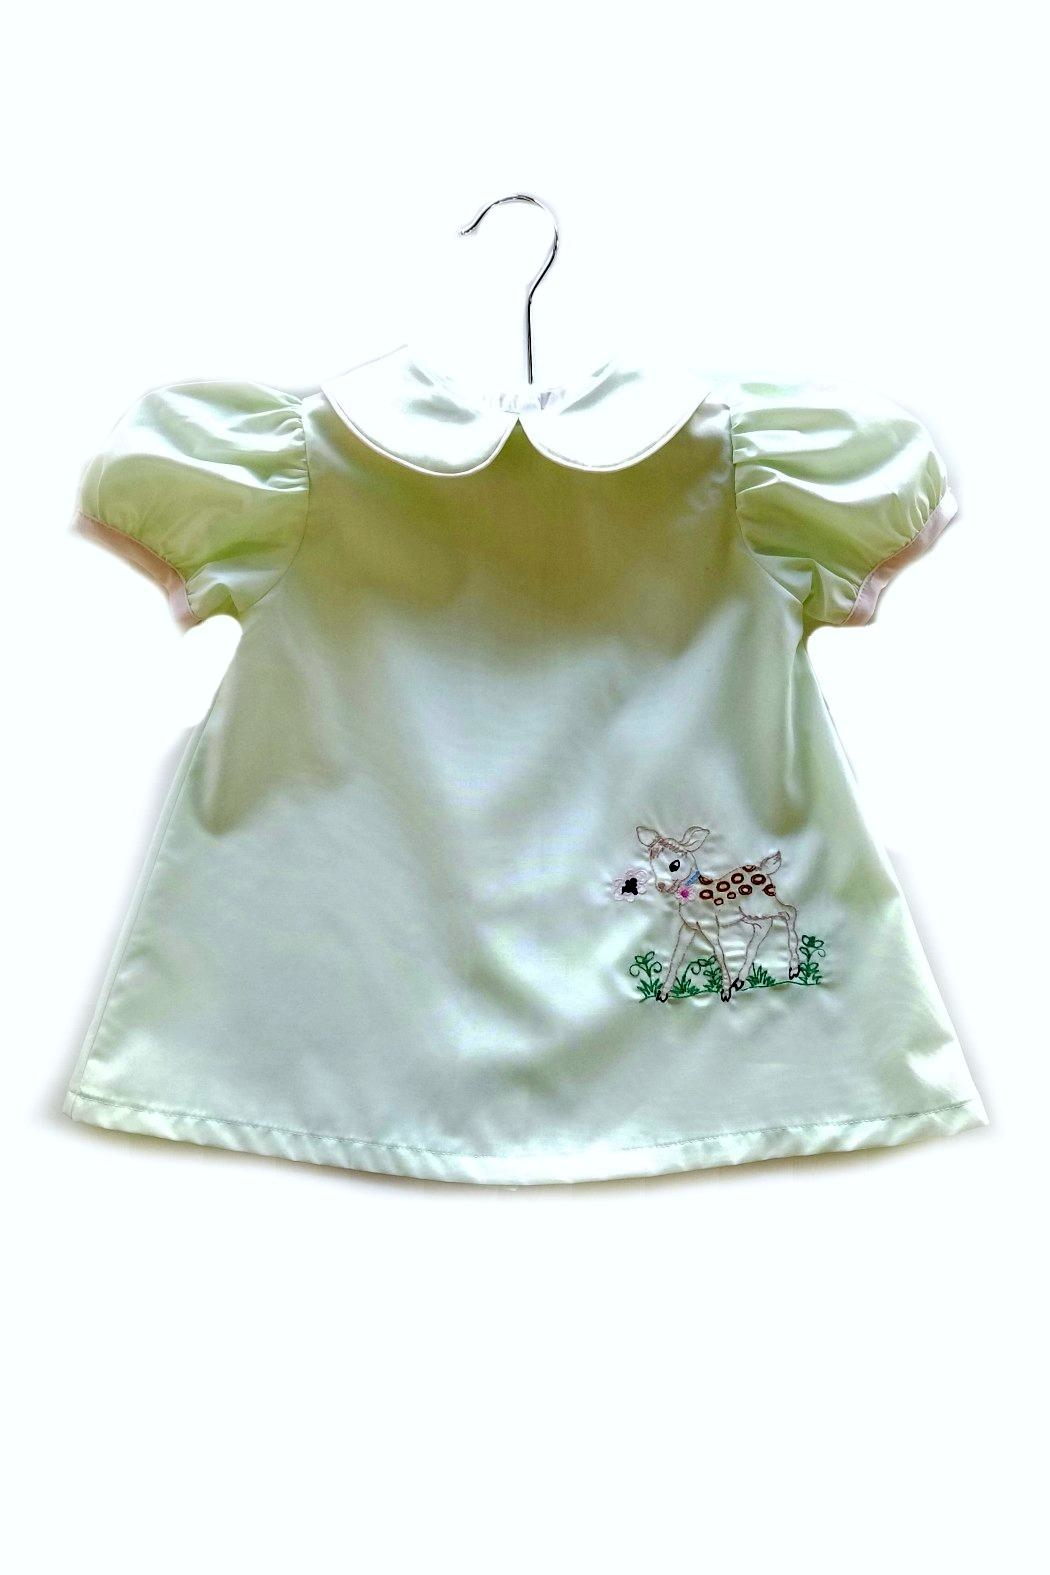 La Jenns Vintage-Inspired-Baby-Deer-Embroidery Dress - Front Cropped Image